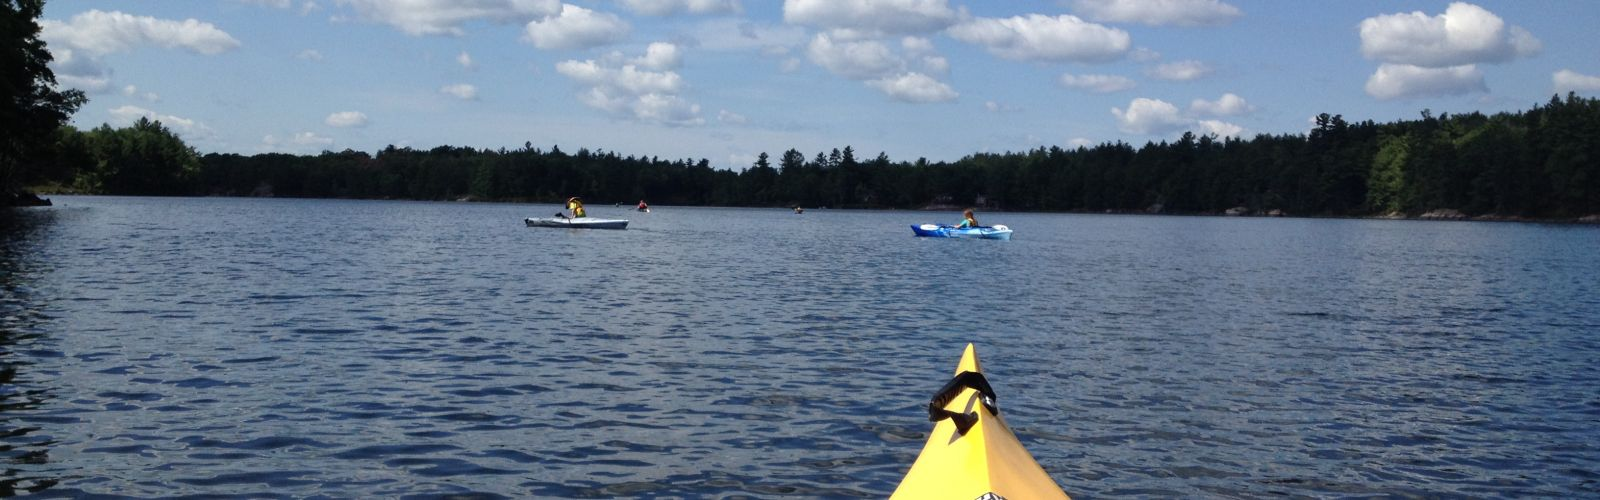 Summer kayaking, events